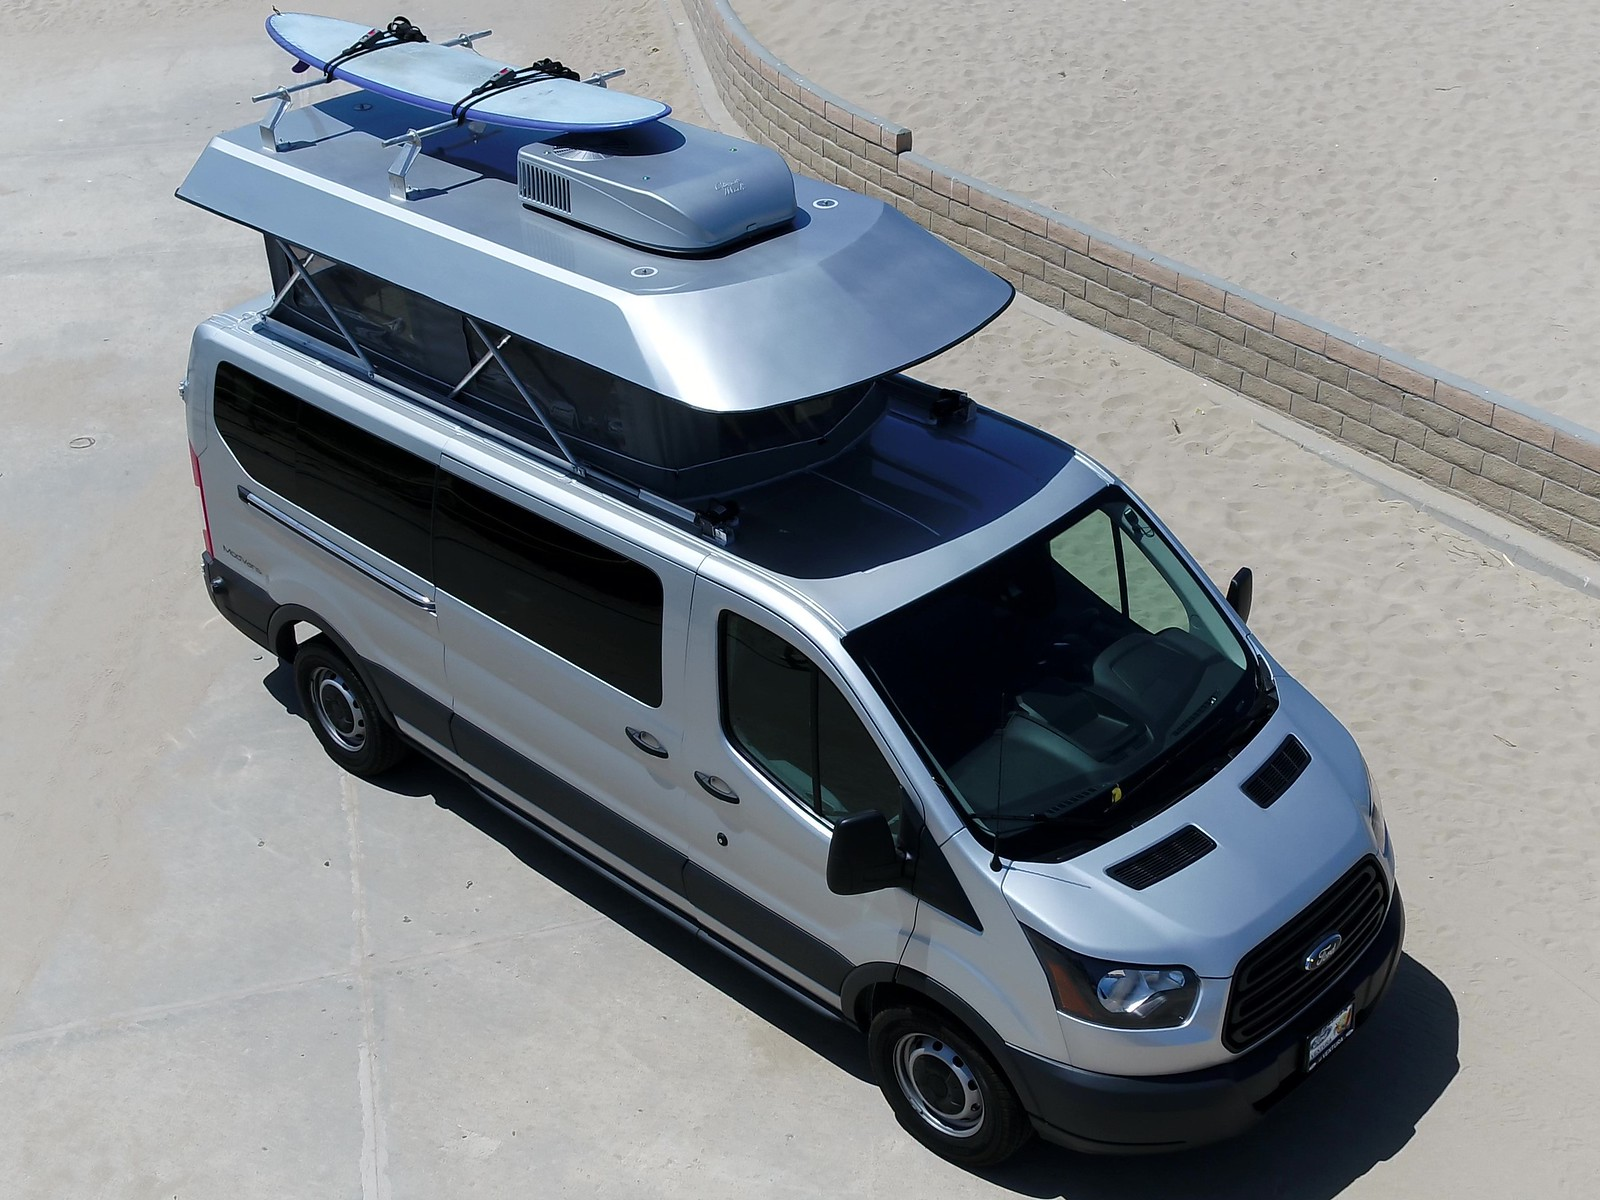 Top RVs of 2019: 'RVX' Reveals Show Winners | GearJunkie